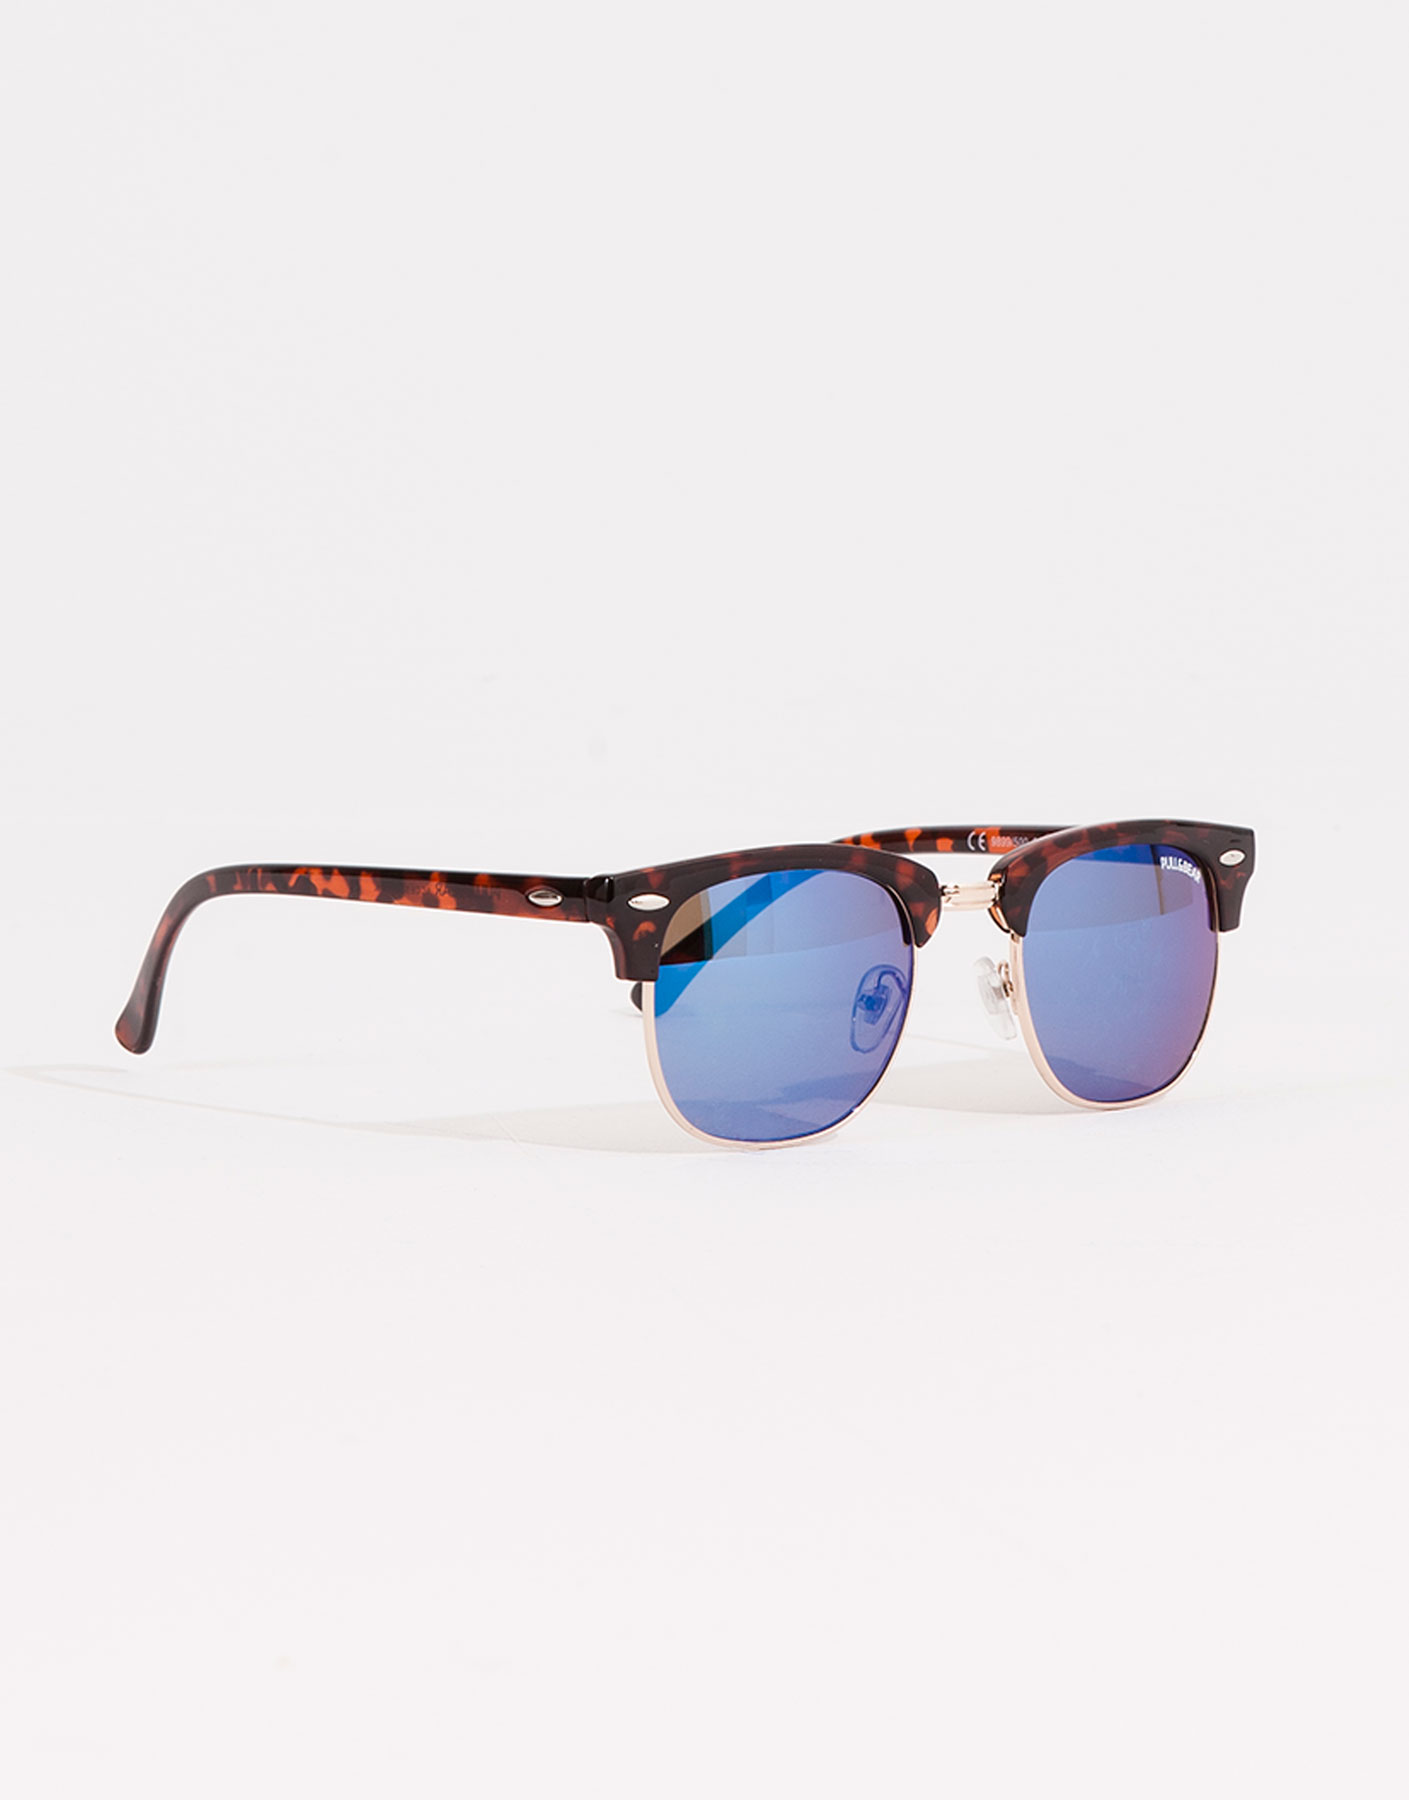 Tortoiseshell and metal sunnies